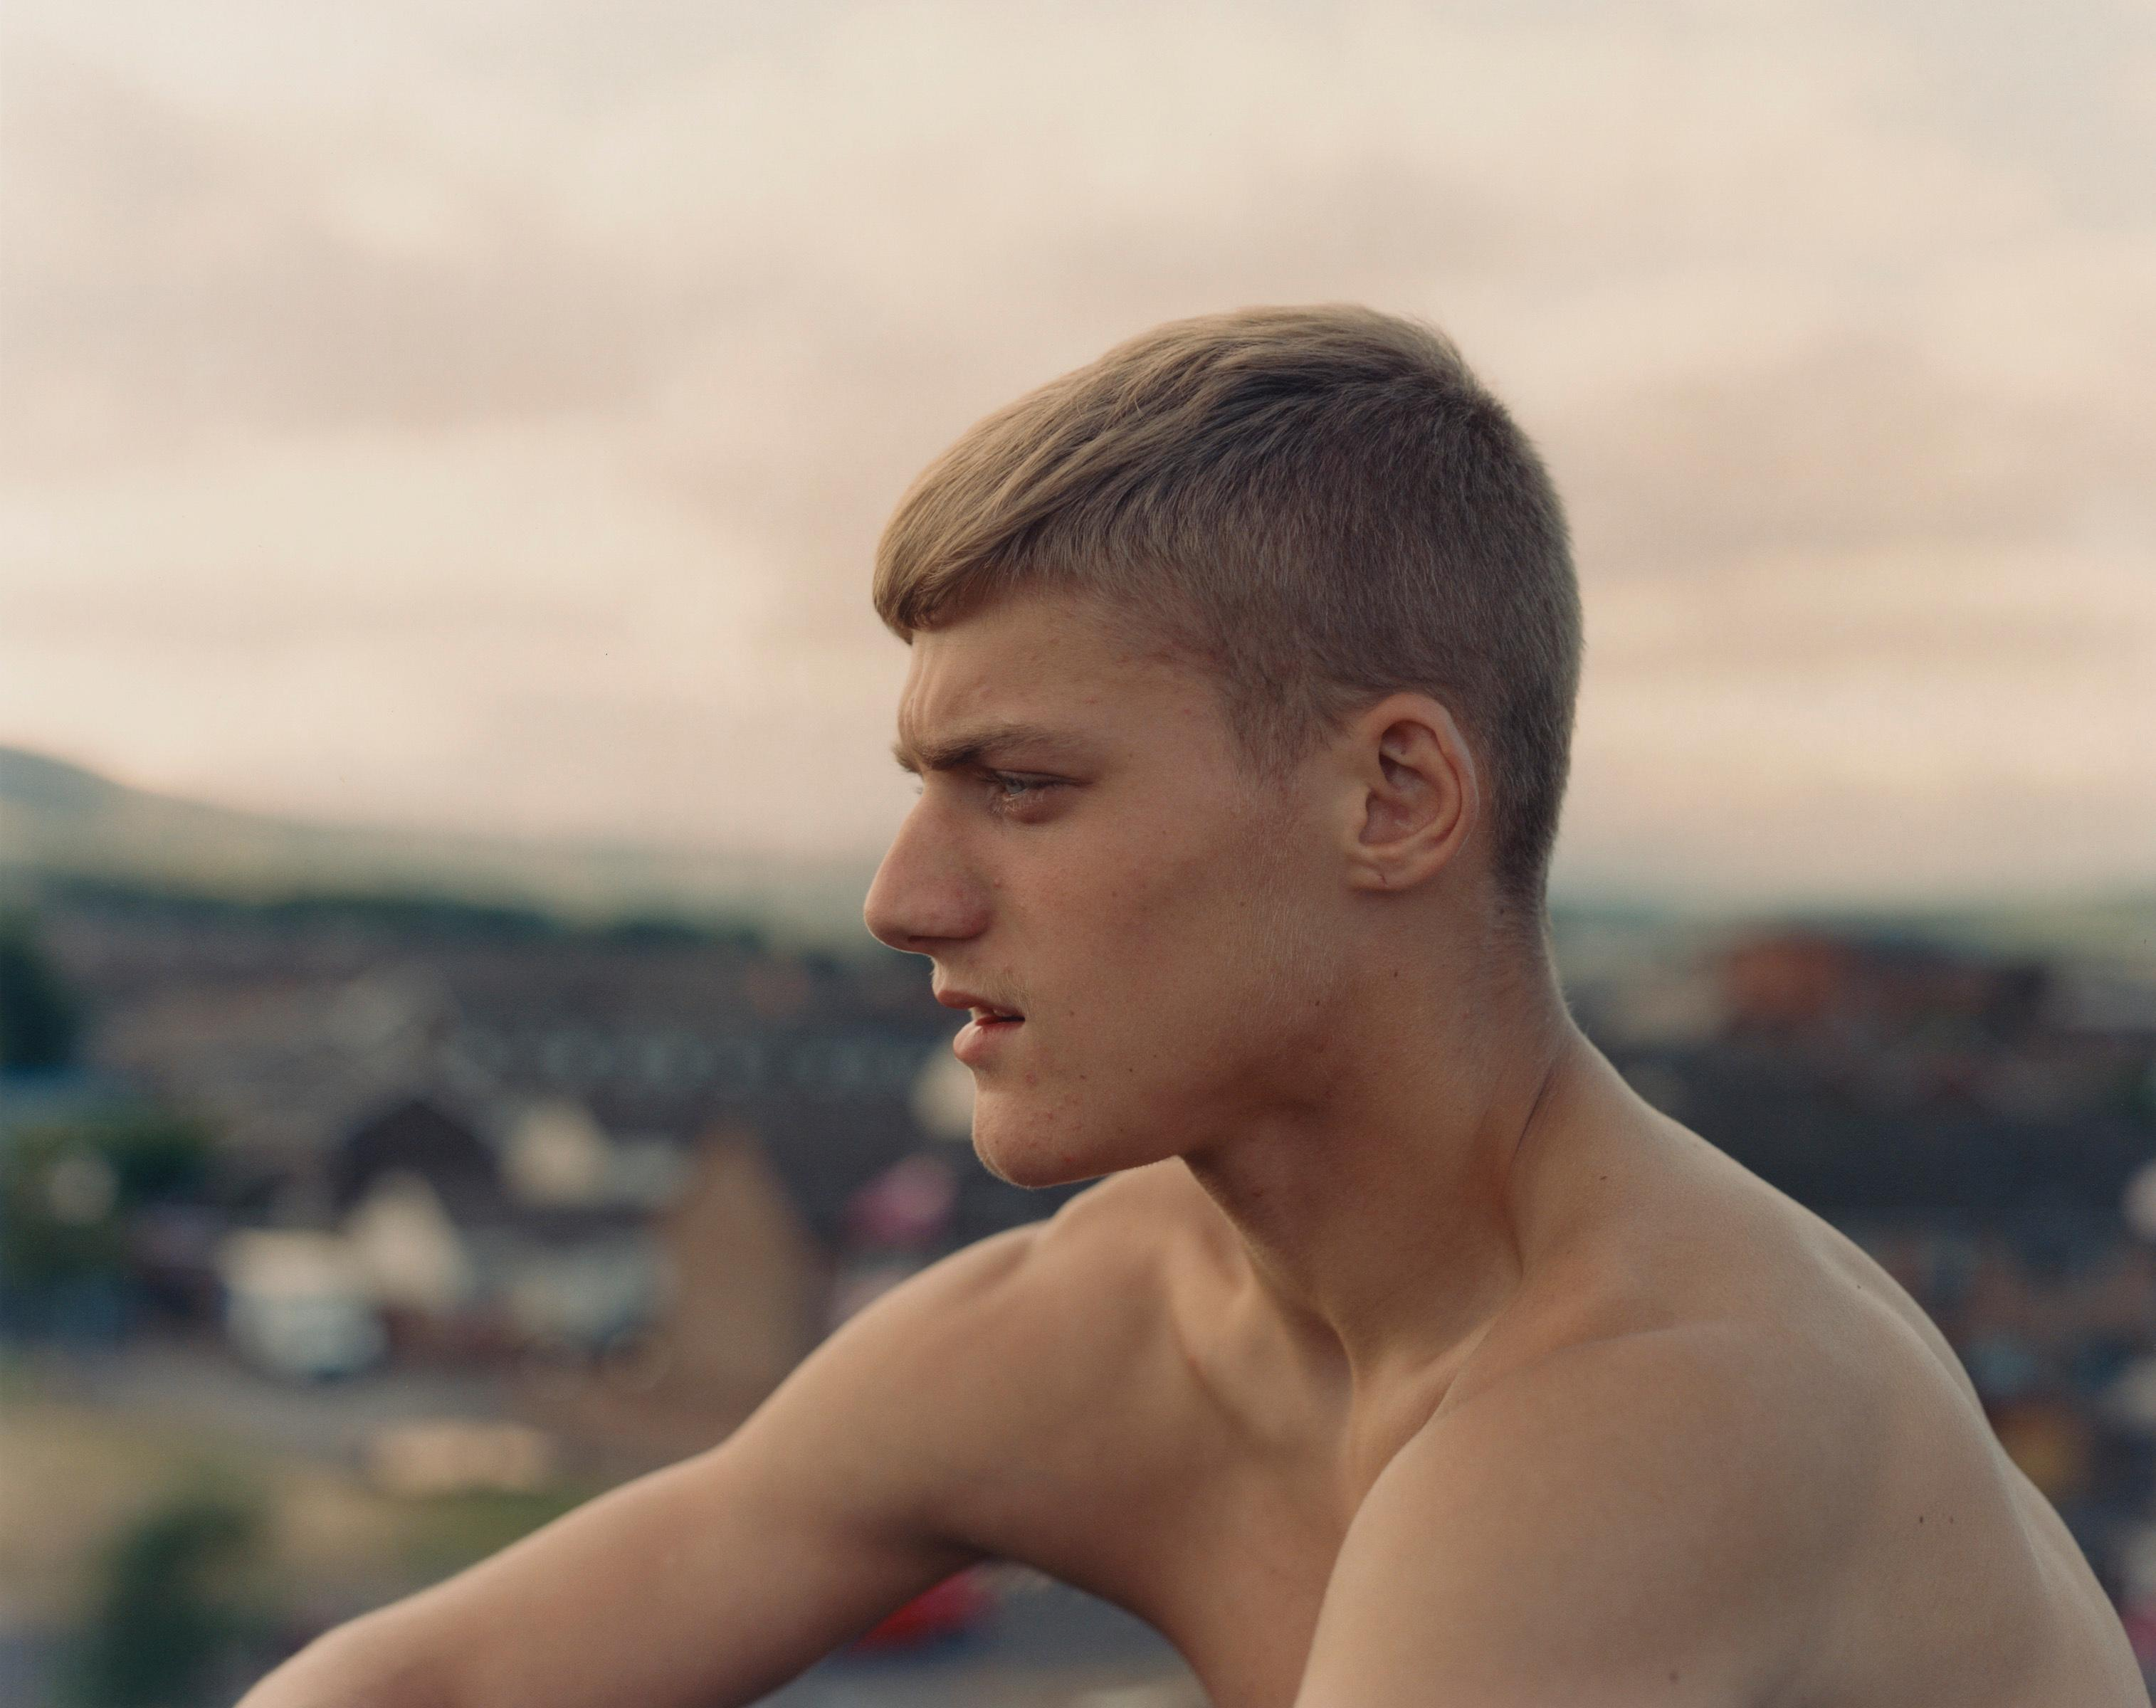 Photo of young man on Belfast estate up for Taylor Wessing prize